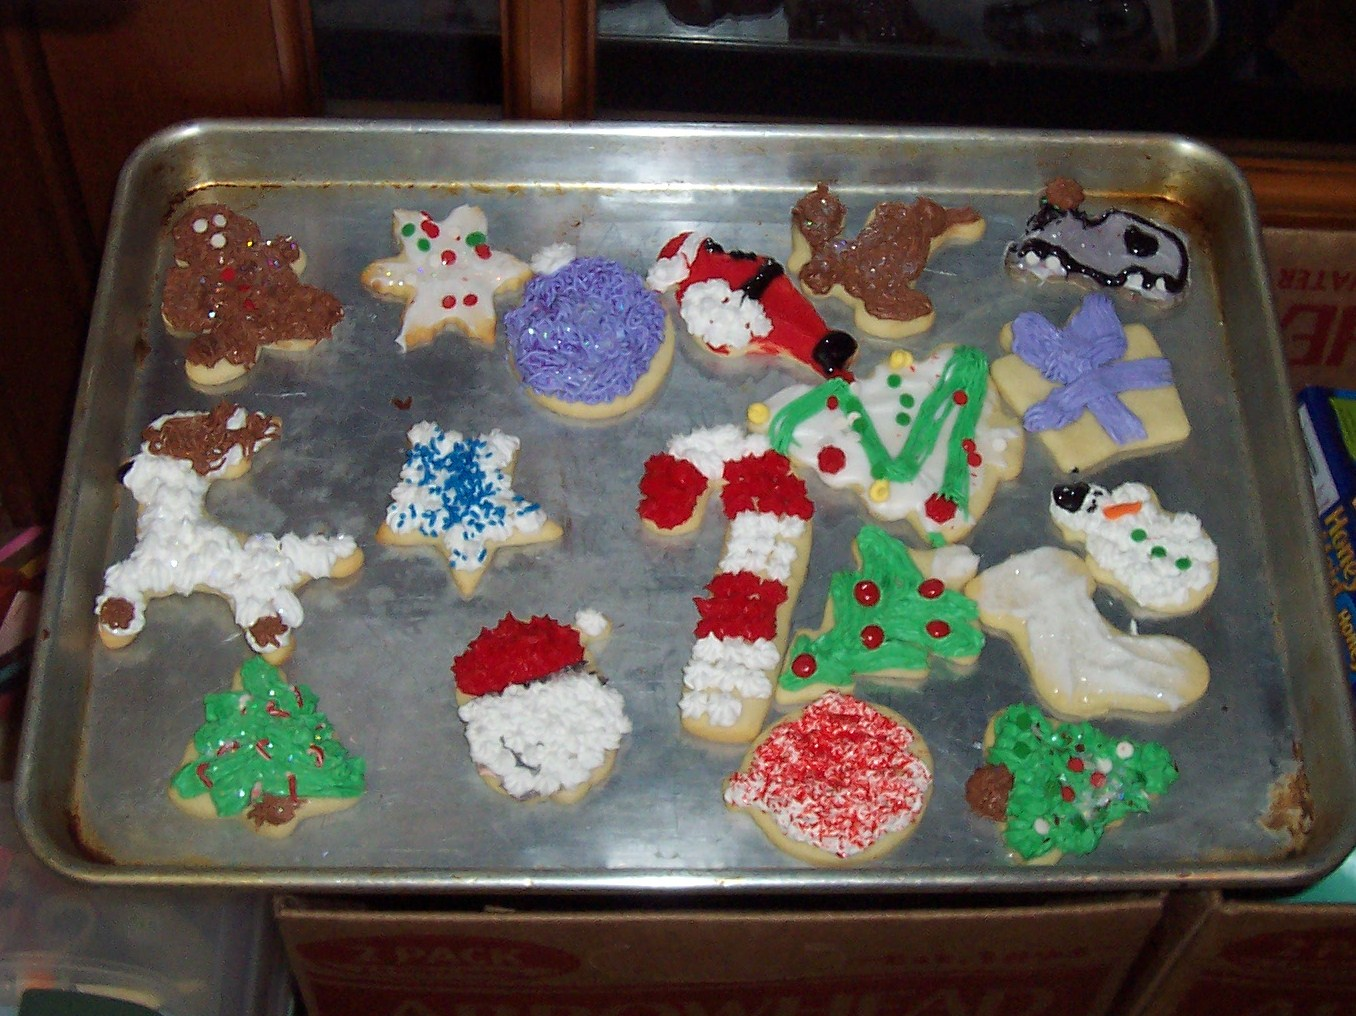 ... Christmas Cookies 2009 056 & Nibbles of Tidbits a Food BlogMore Christmas Cookie Decorating ...